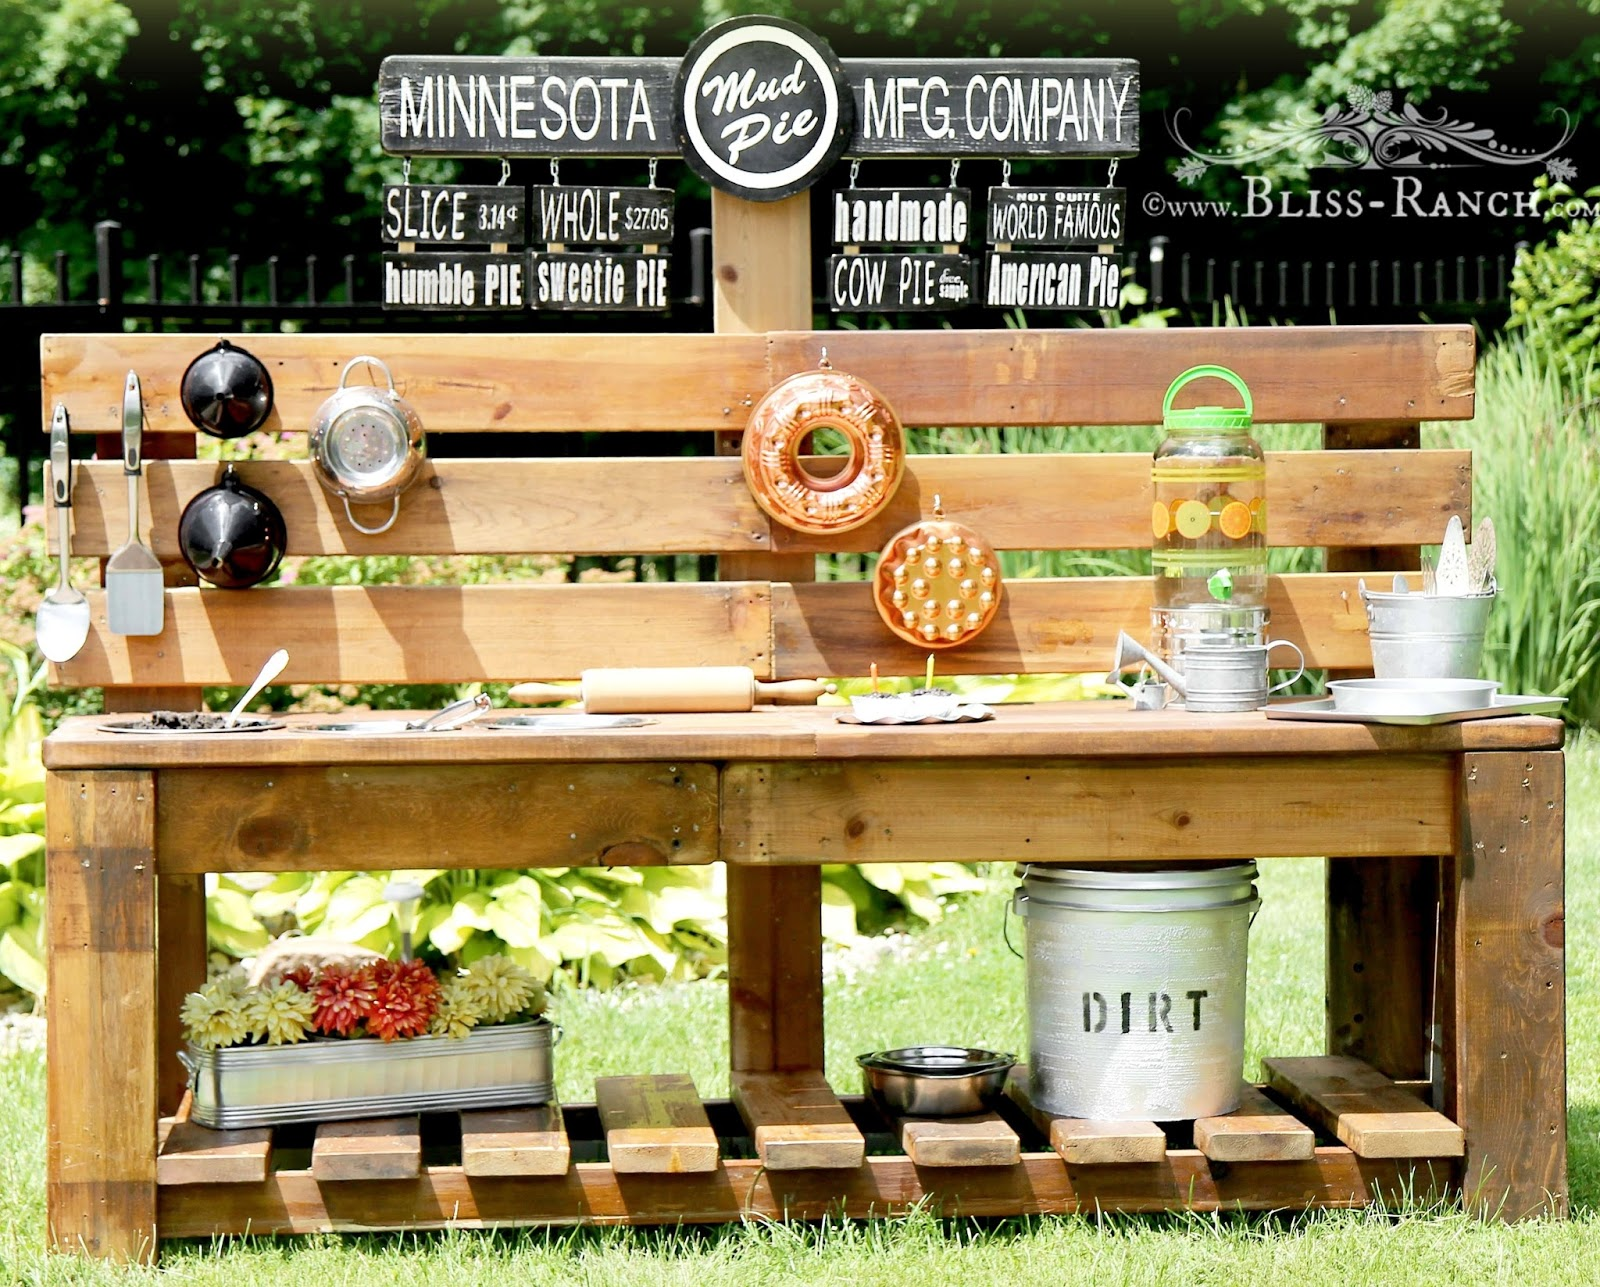 Mud Pie Station, Bliss-Ranch.com